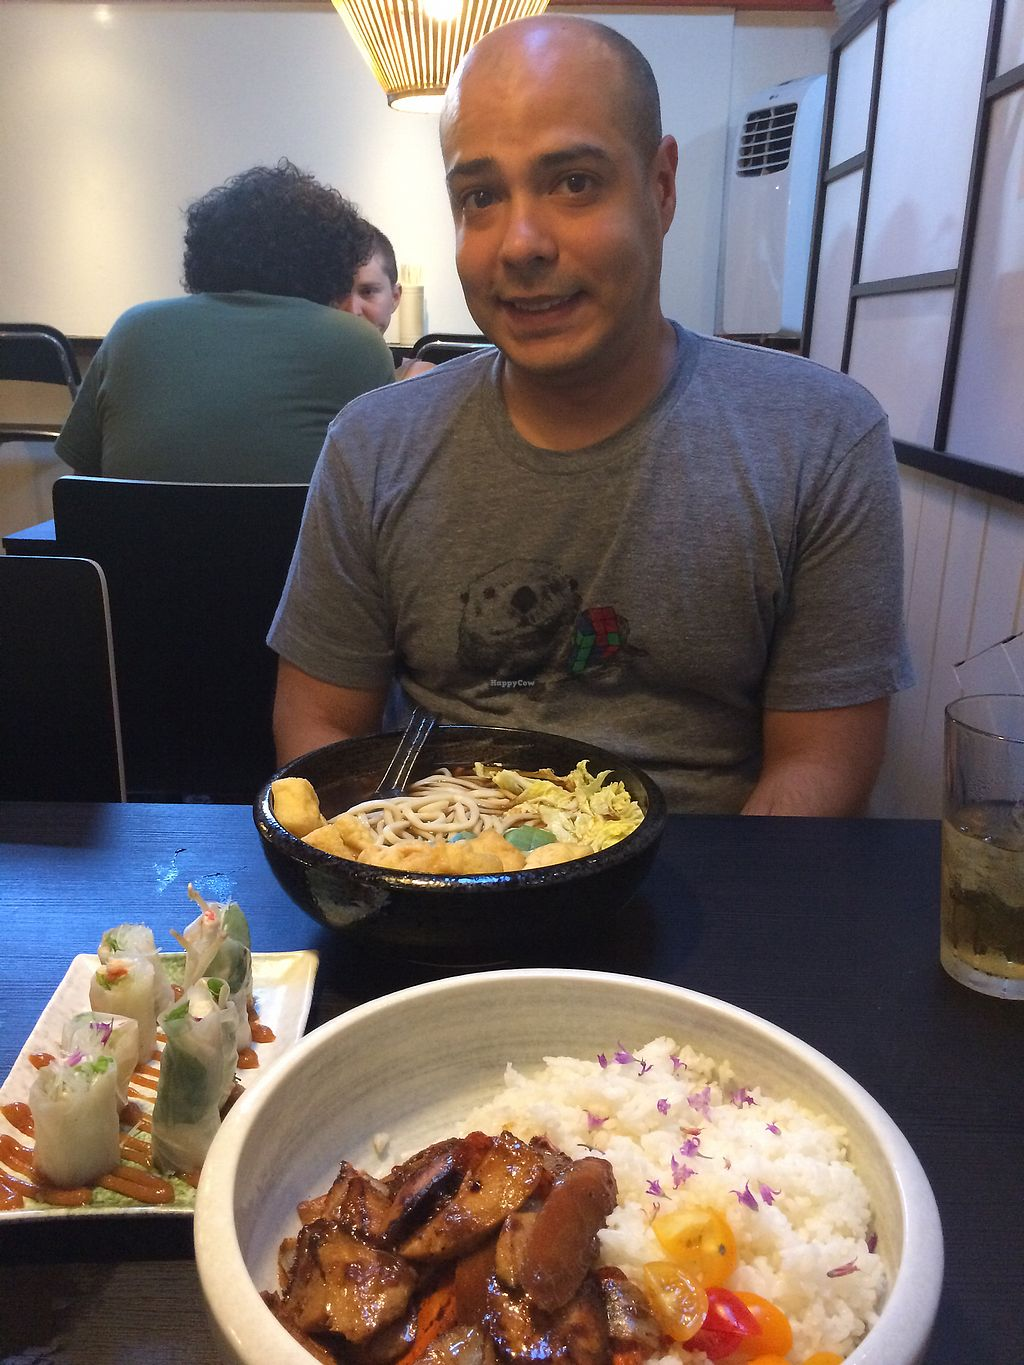 "Photo of Ichiza Kitchen & Tea House  by <a href=""/members/profile/BrittanyHowze"">BrittanyHowze</a> <br/>adobo rice bowl, fox udon noodle bowl, and salad rolls/spring rolls? <br/> August 6, 2017  - <a href='/contact/abuse/image/95823/289935'>Report</a>"